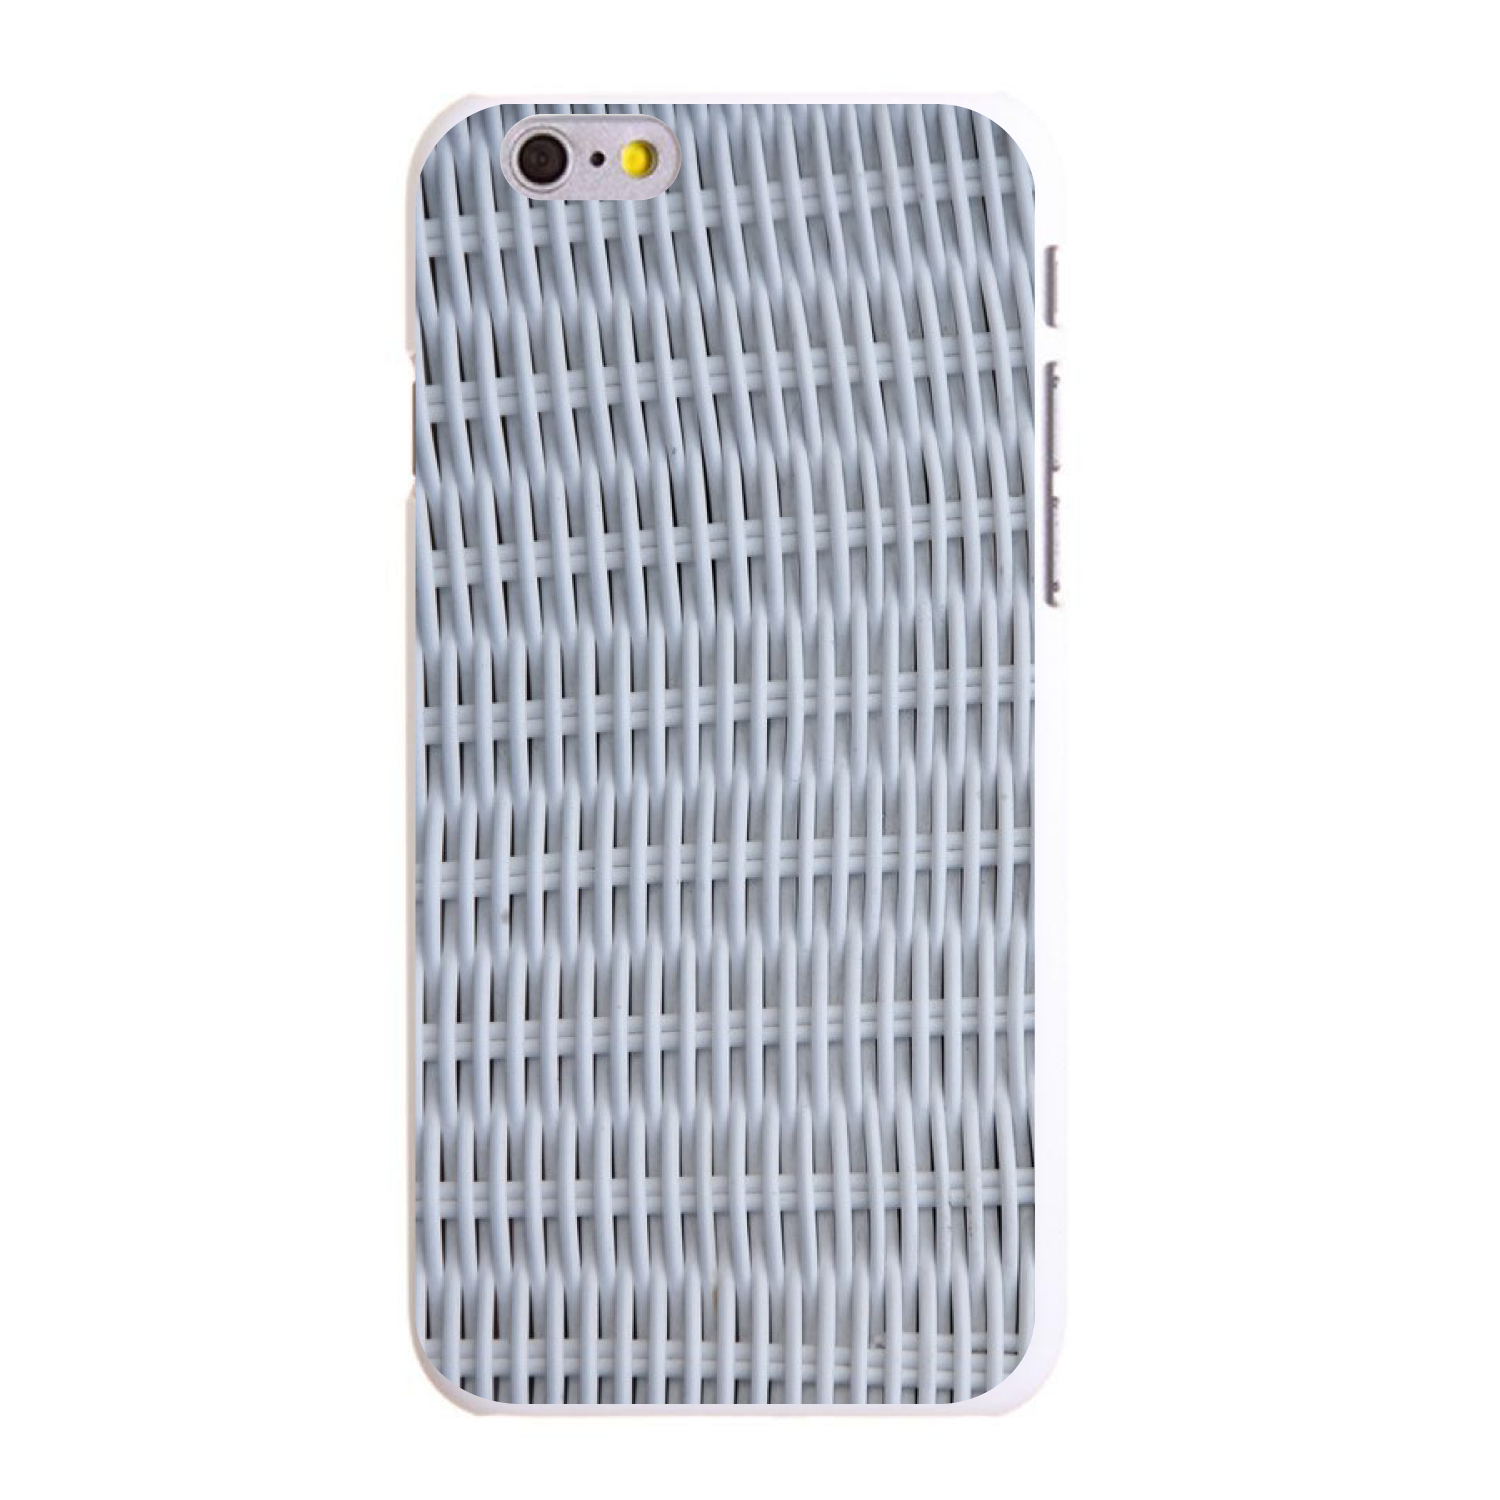 "CUSTOM White Hard Plastic Snap-On Case for Apple iPhone 6 / 6S (4.7"" Screen) - White Wicker Painted"